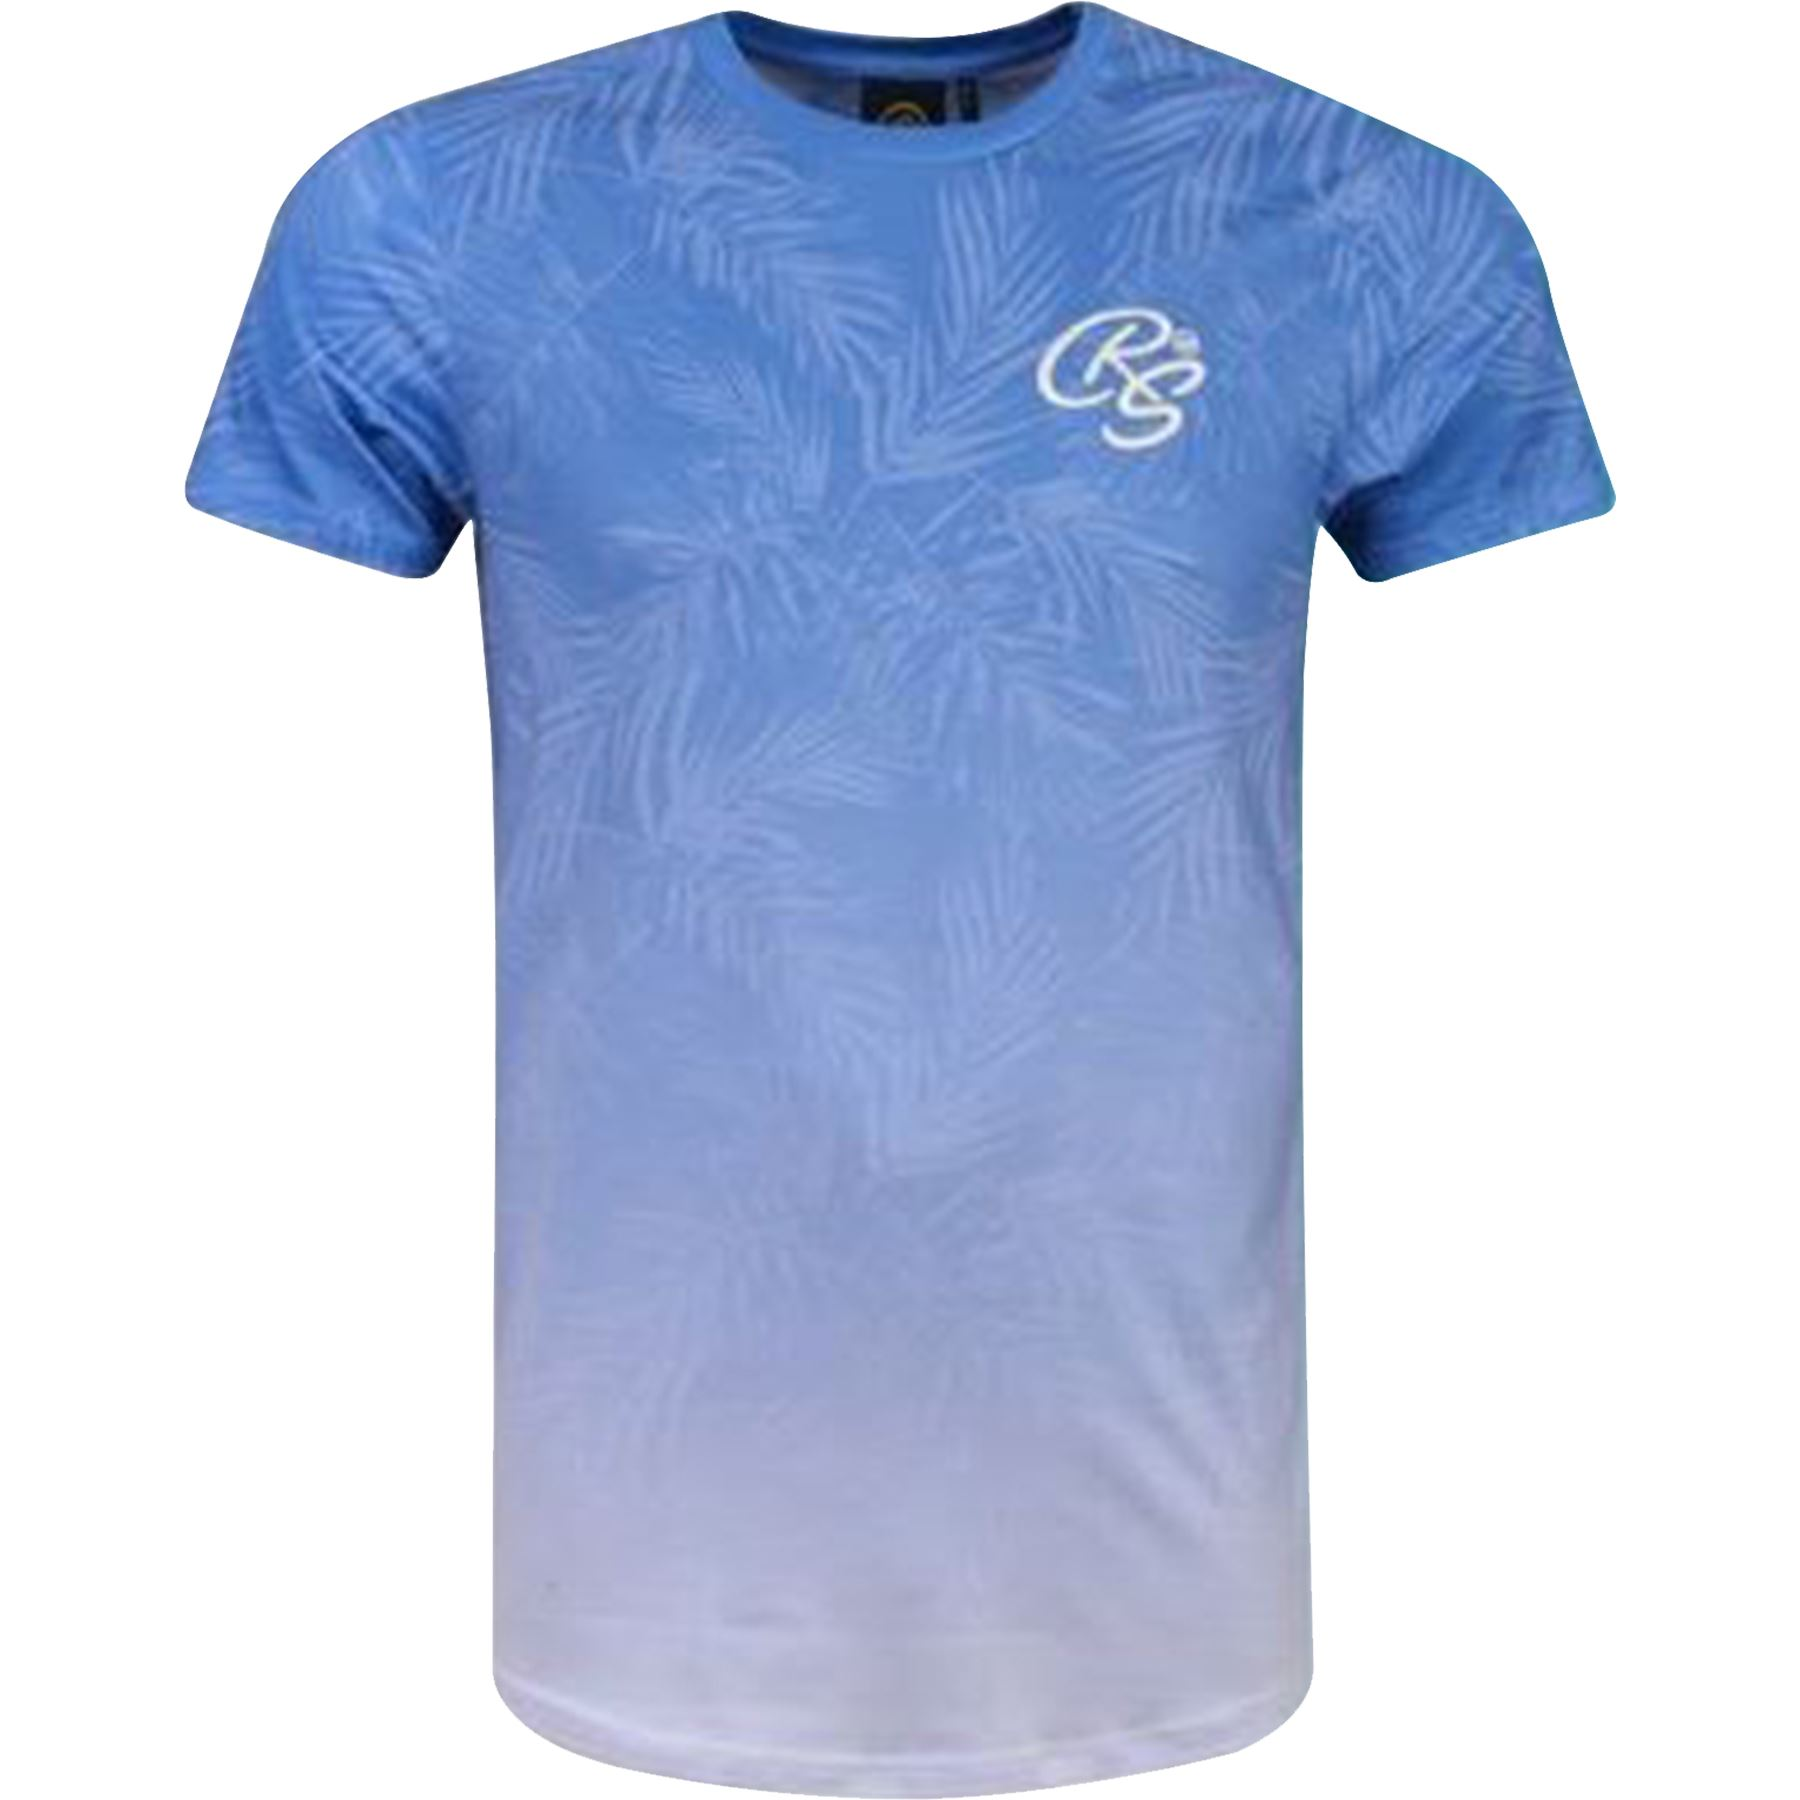 New-Mens-Crosshatch-T-Shirt-Summer-Contrast-Fade-2-Tone-Short-Sleeved-Top-Tee thumbnail 3